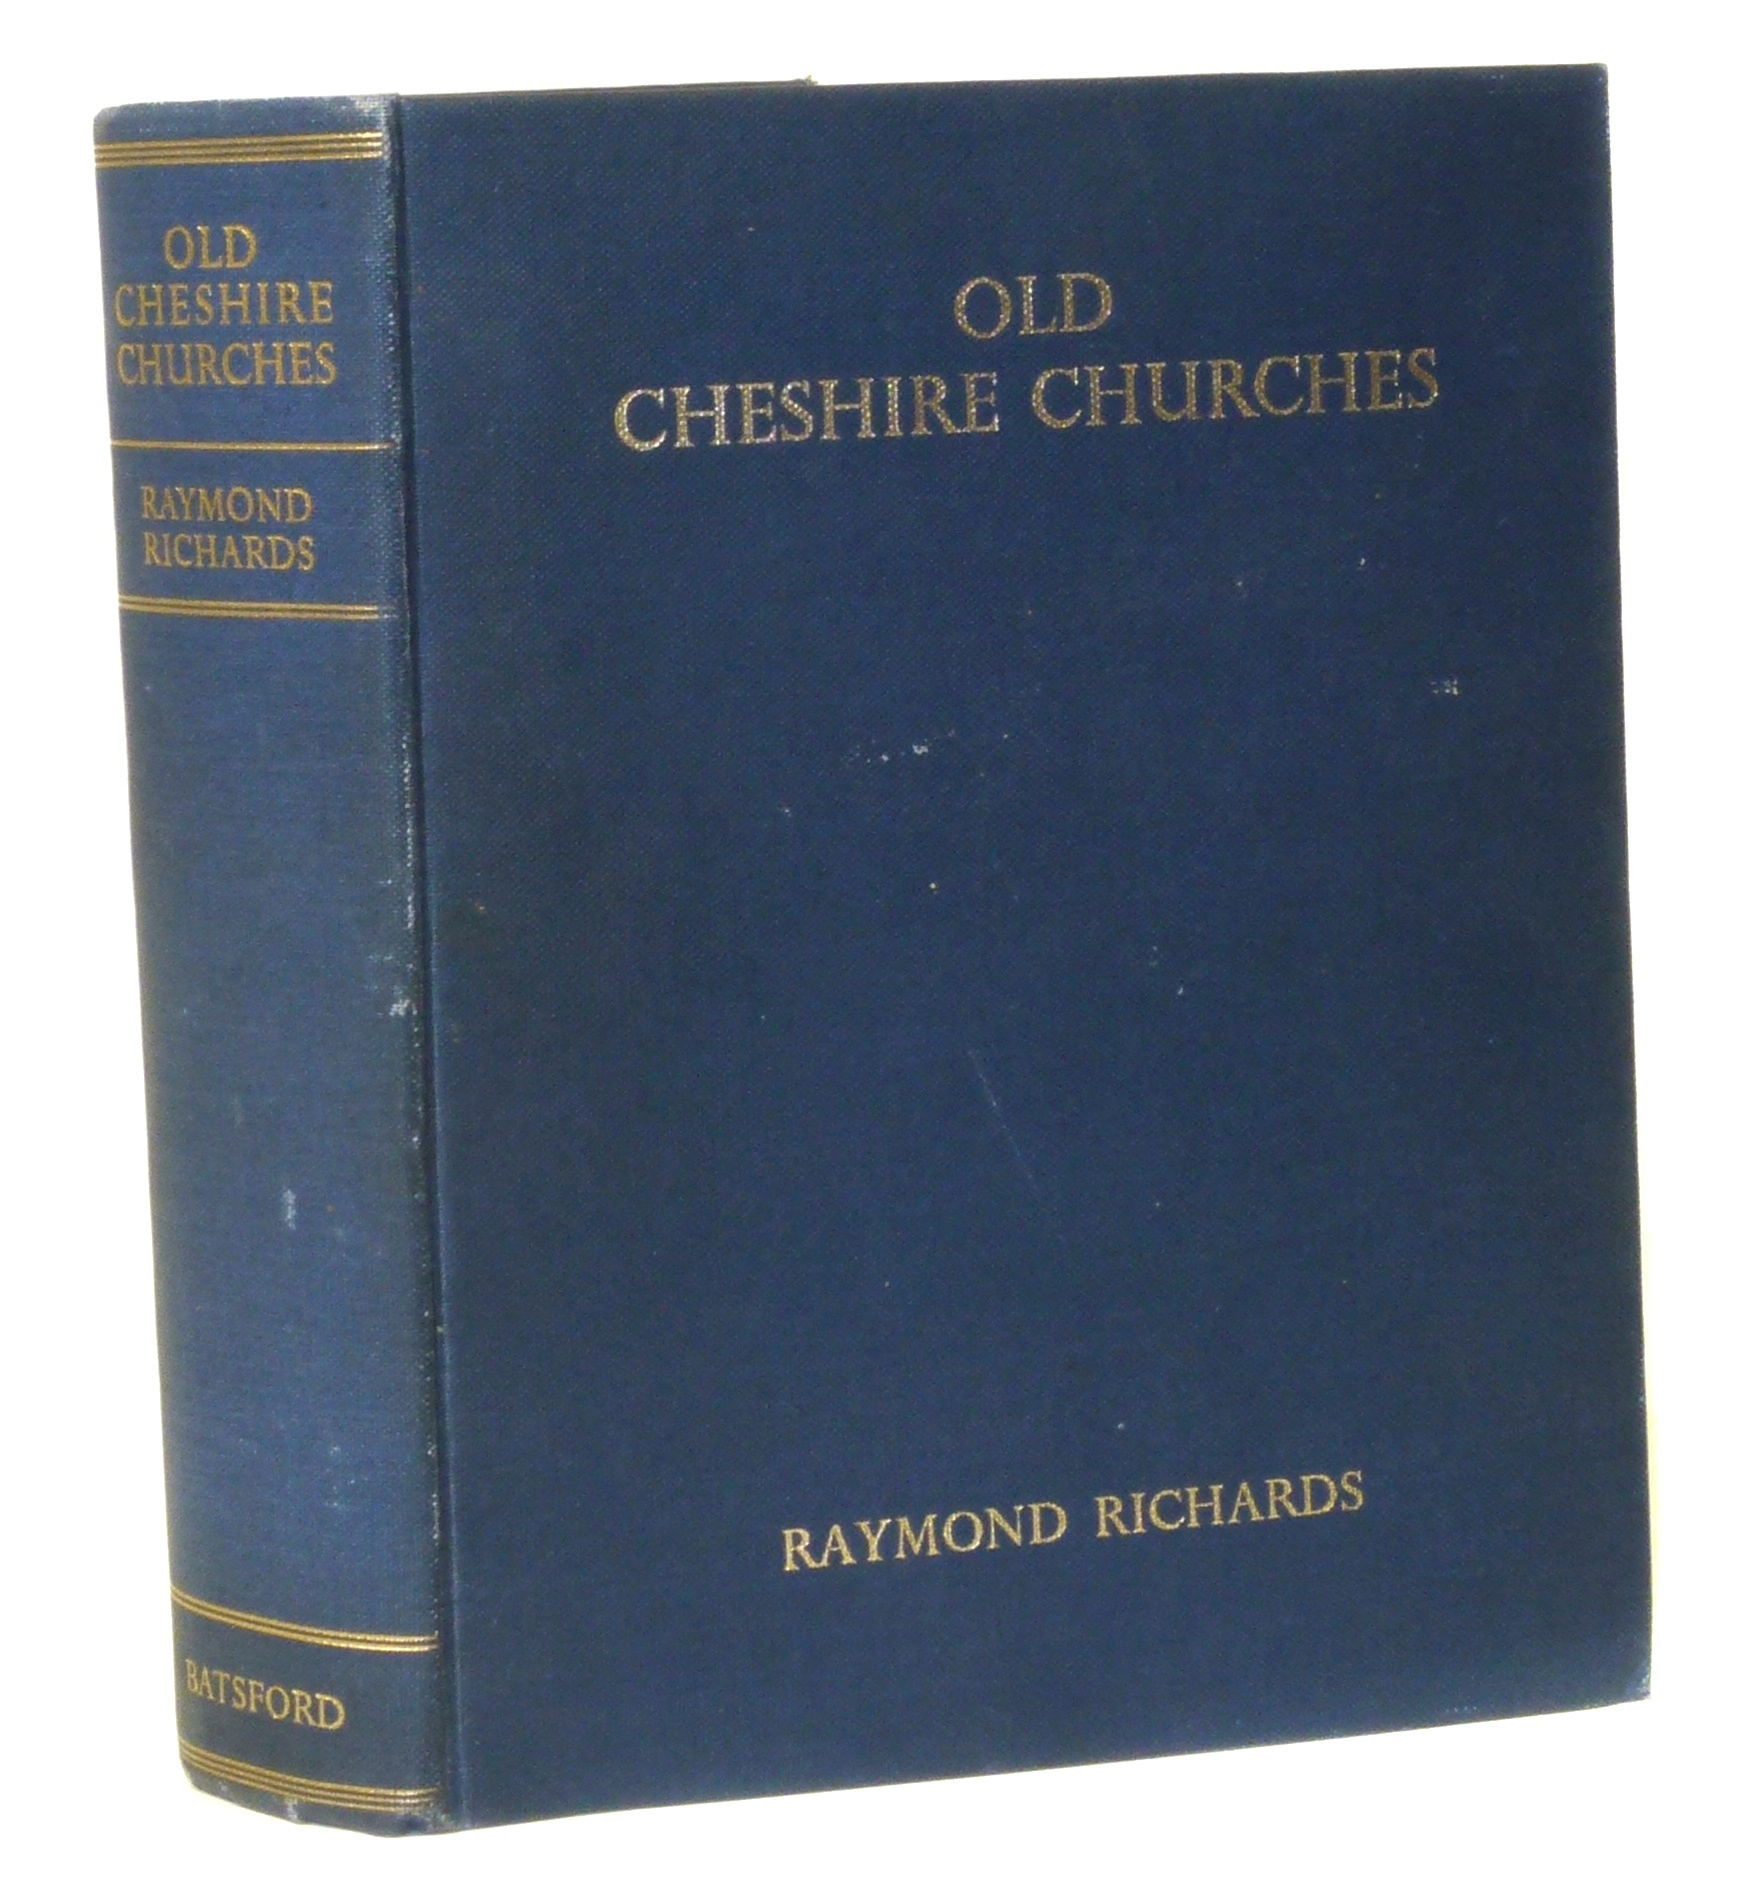 Lot 30 - Richards, R., Old Cheshire Churches, 1947. We are unable to do condition reports on our Interiors